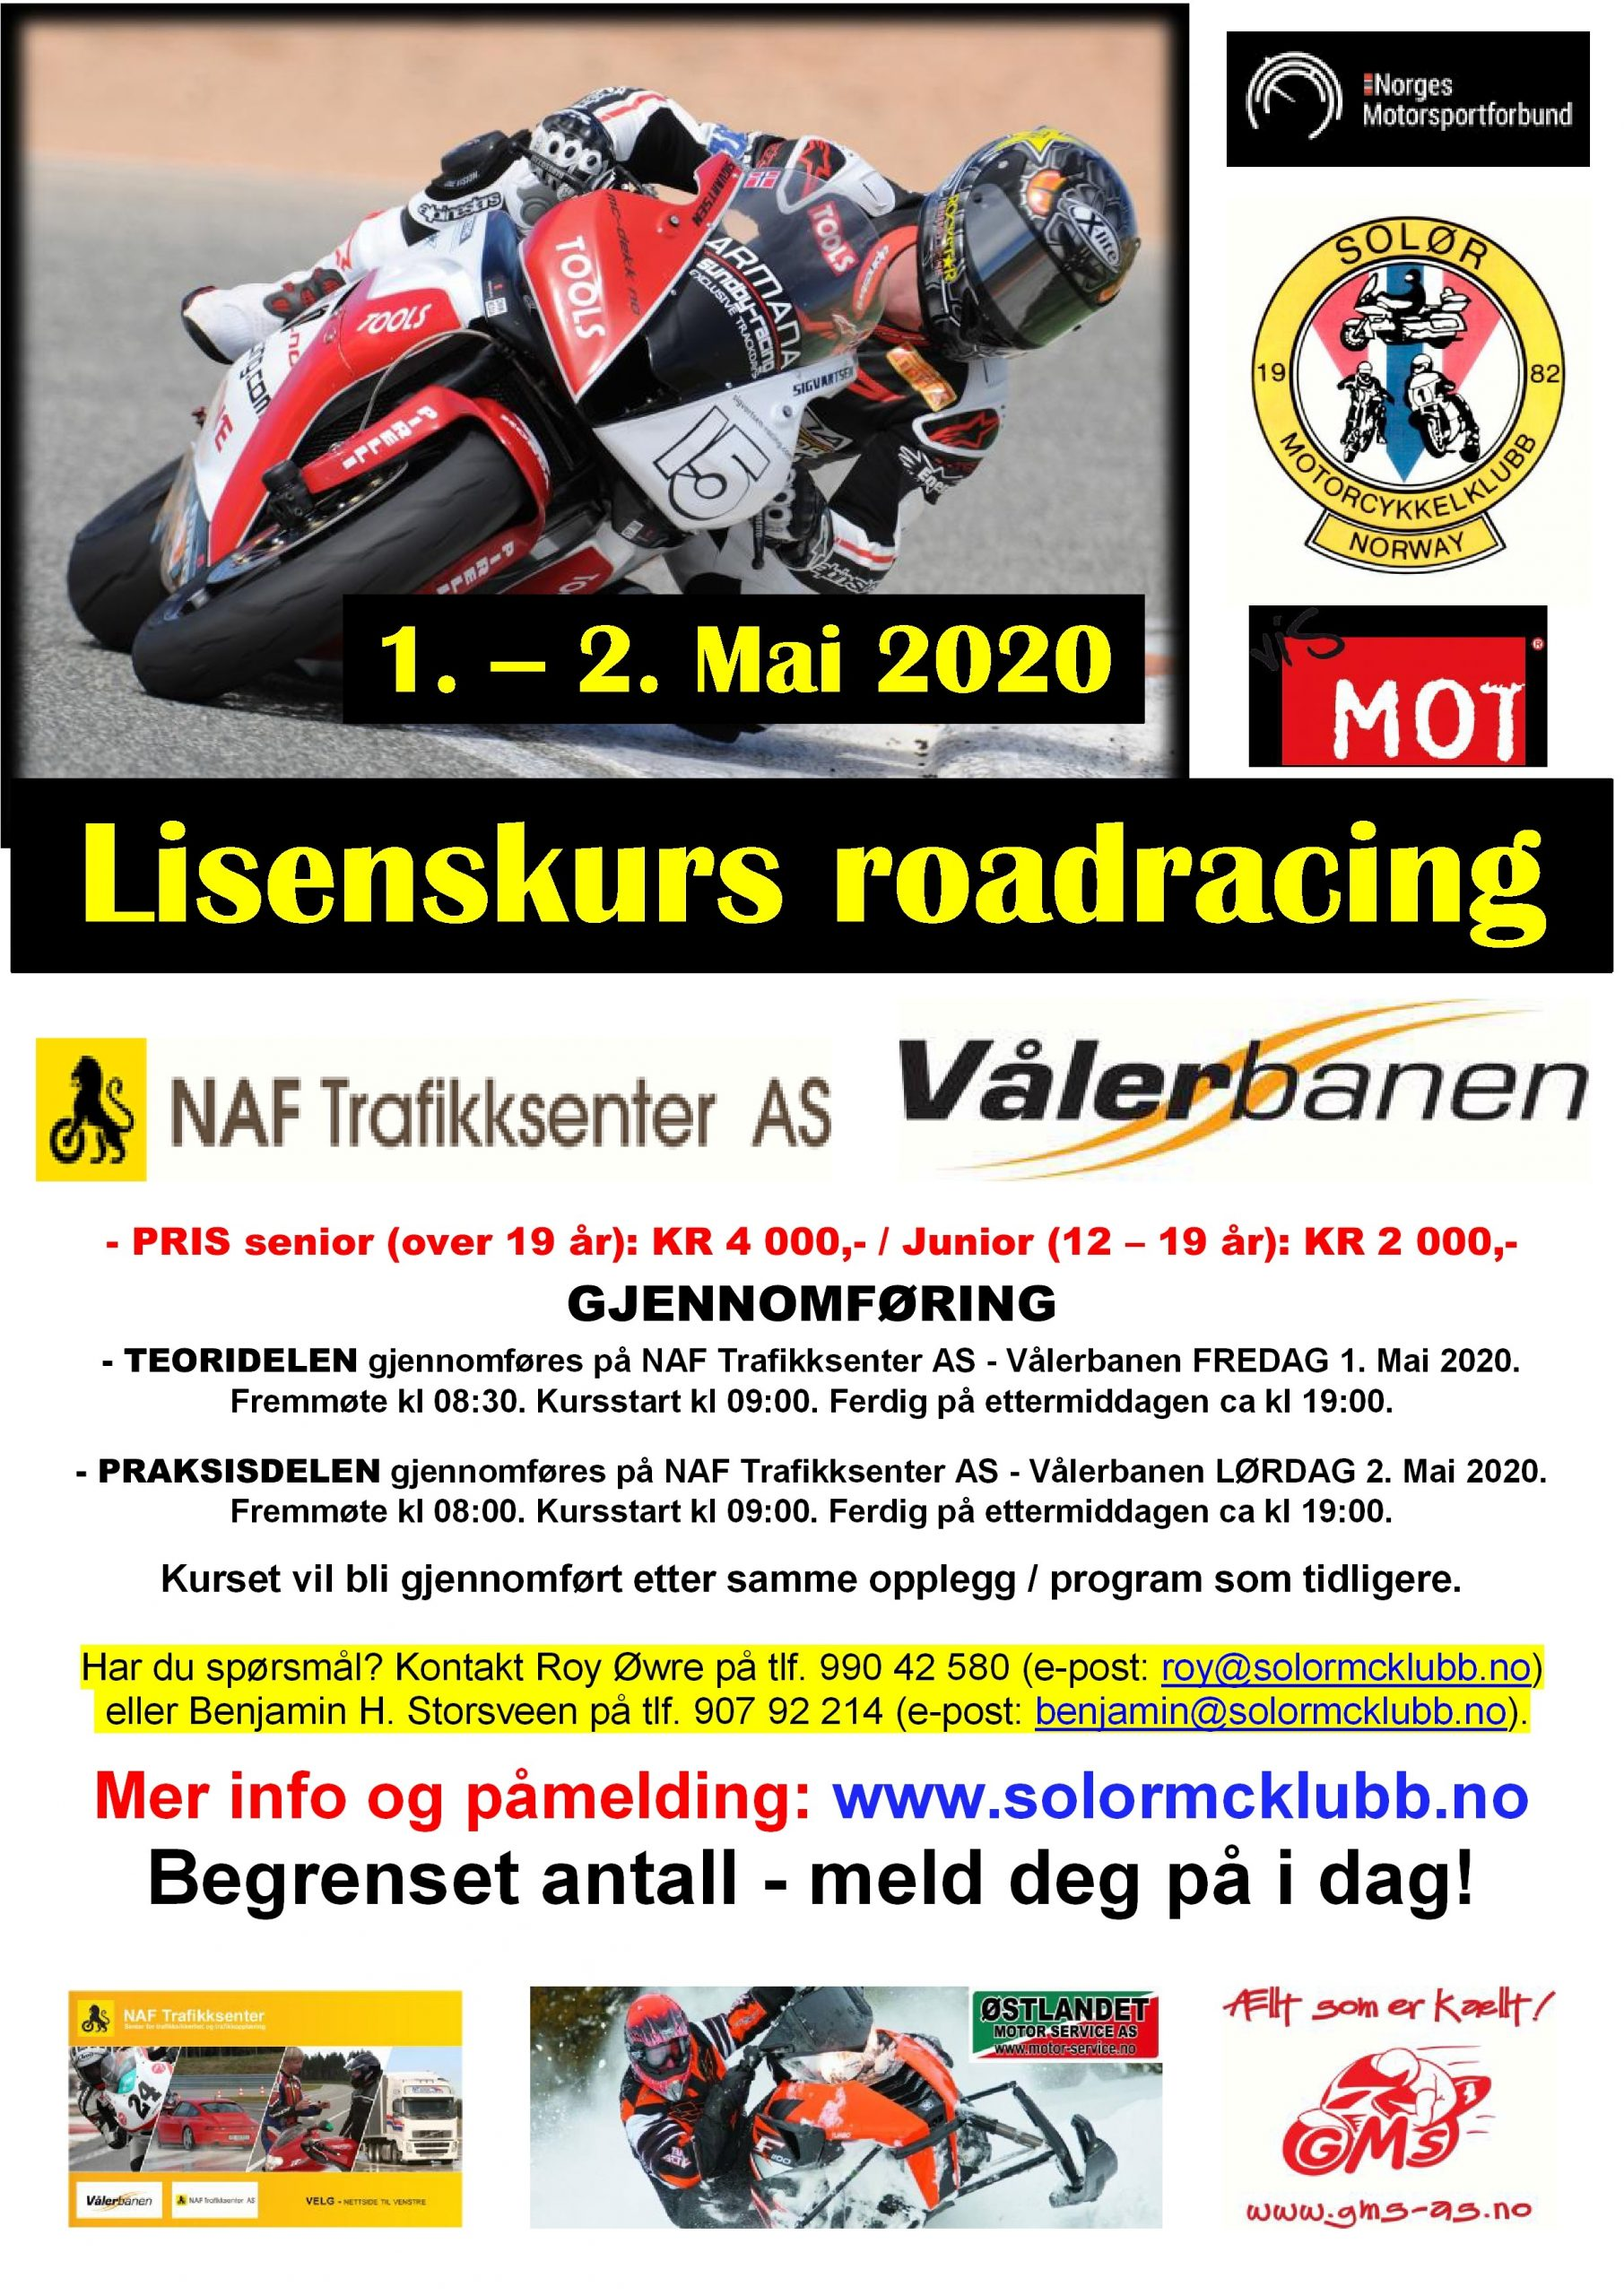 2 - POSTER lisenskurs 1 - roadracing på Vålerbanen – MAI 2020